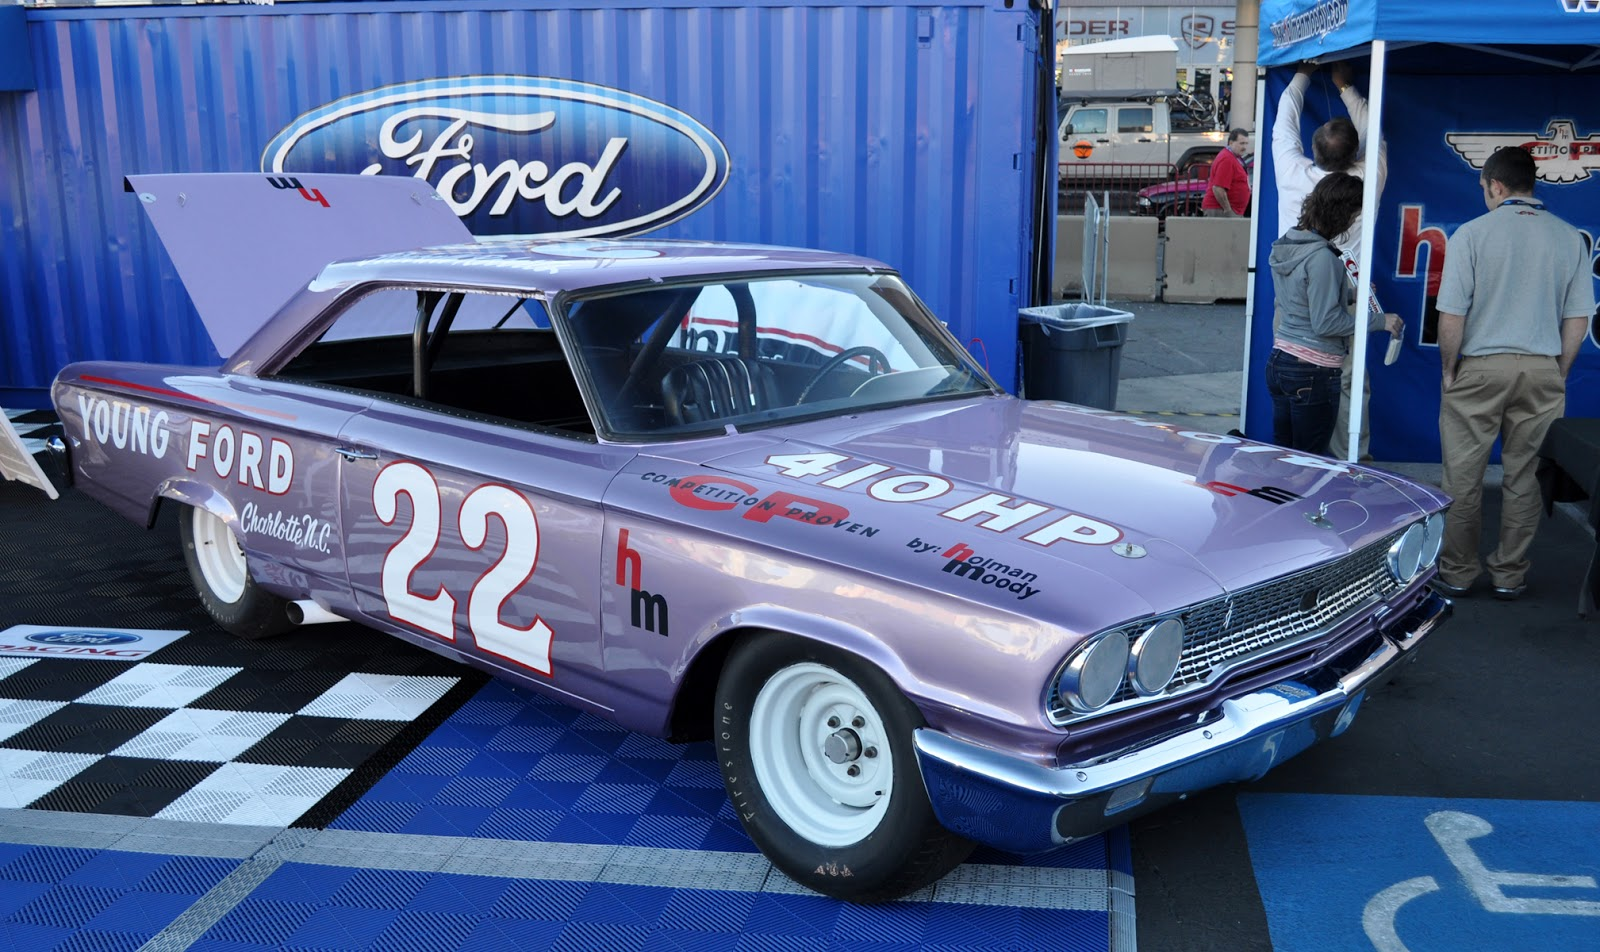 Just A Car Guy: the Holman Moody prepped, Fireball Roberts